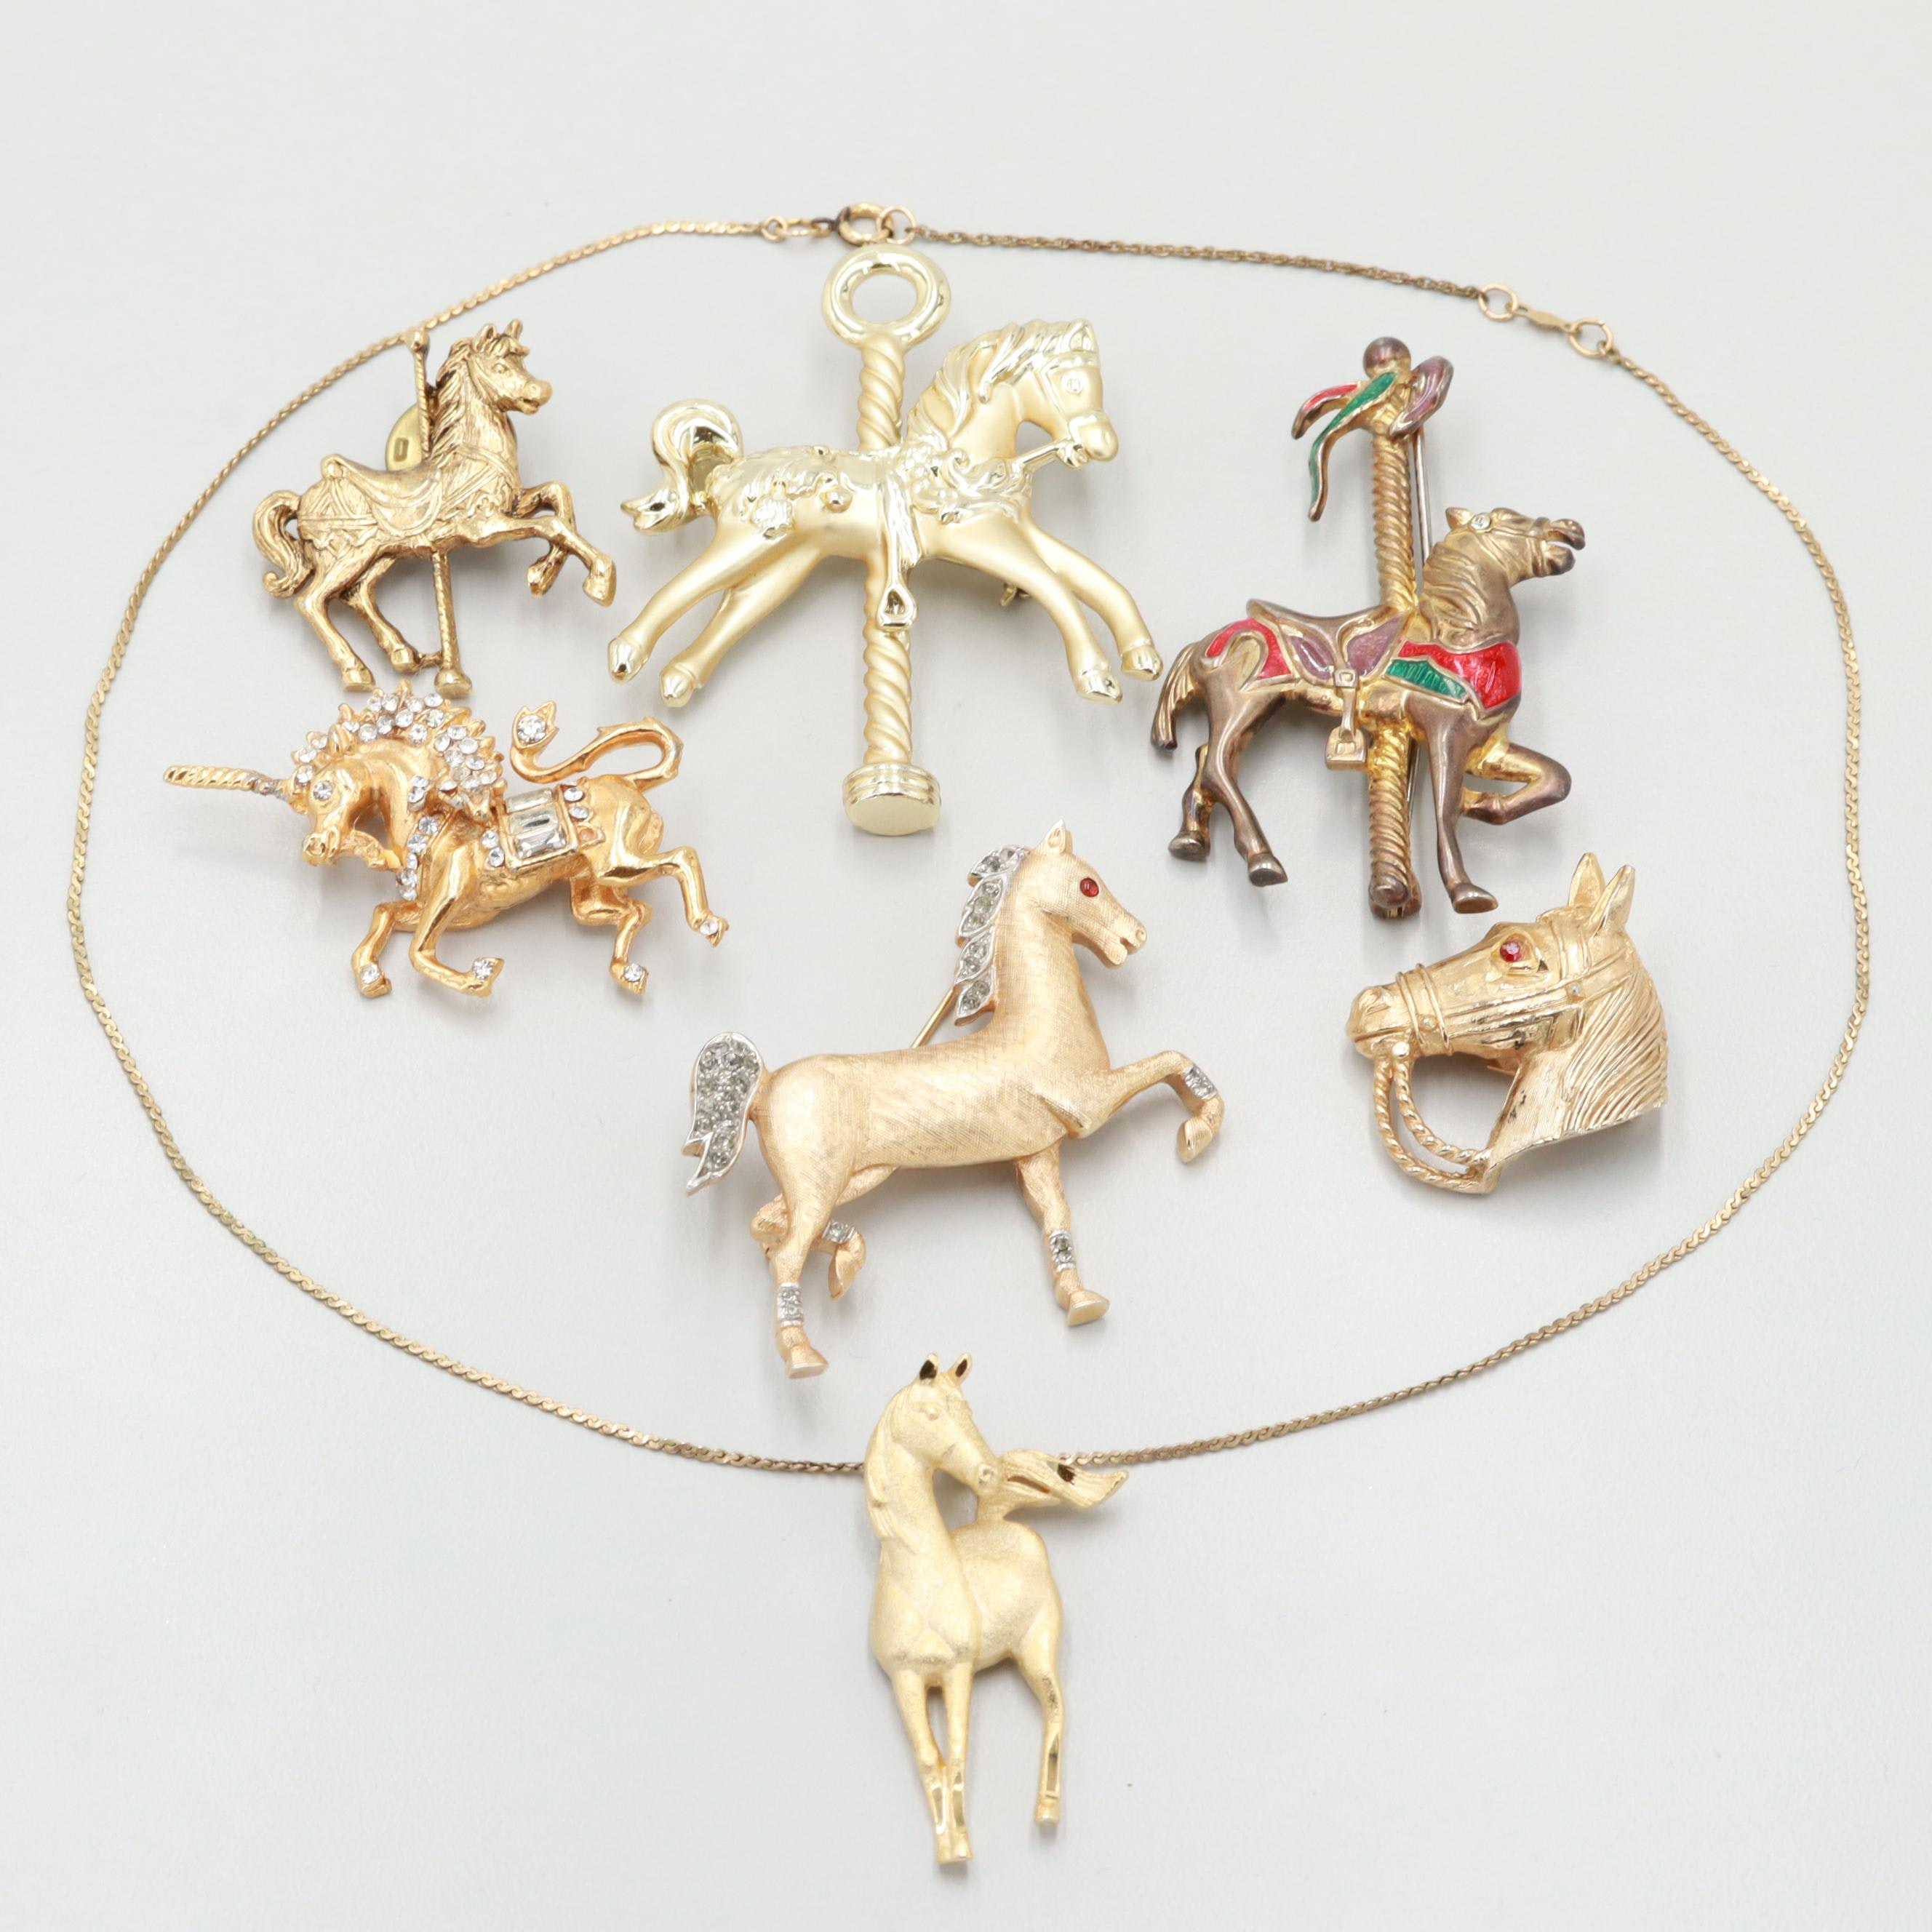 Gold Tone Foiledback Glass and Enamel Horse Themed Jewelry Featuring Trifari